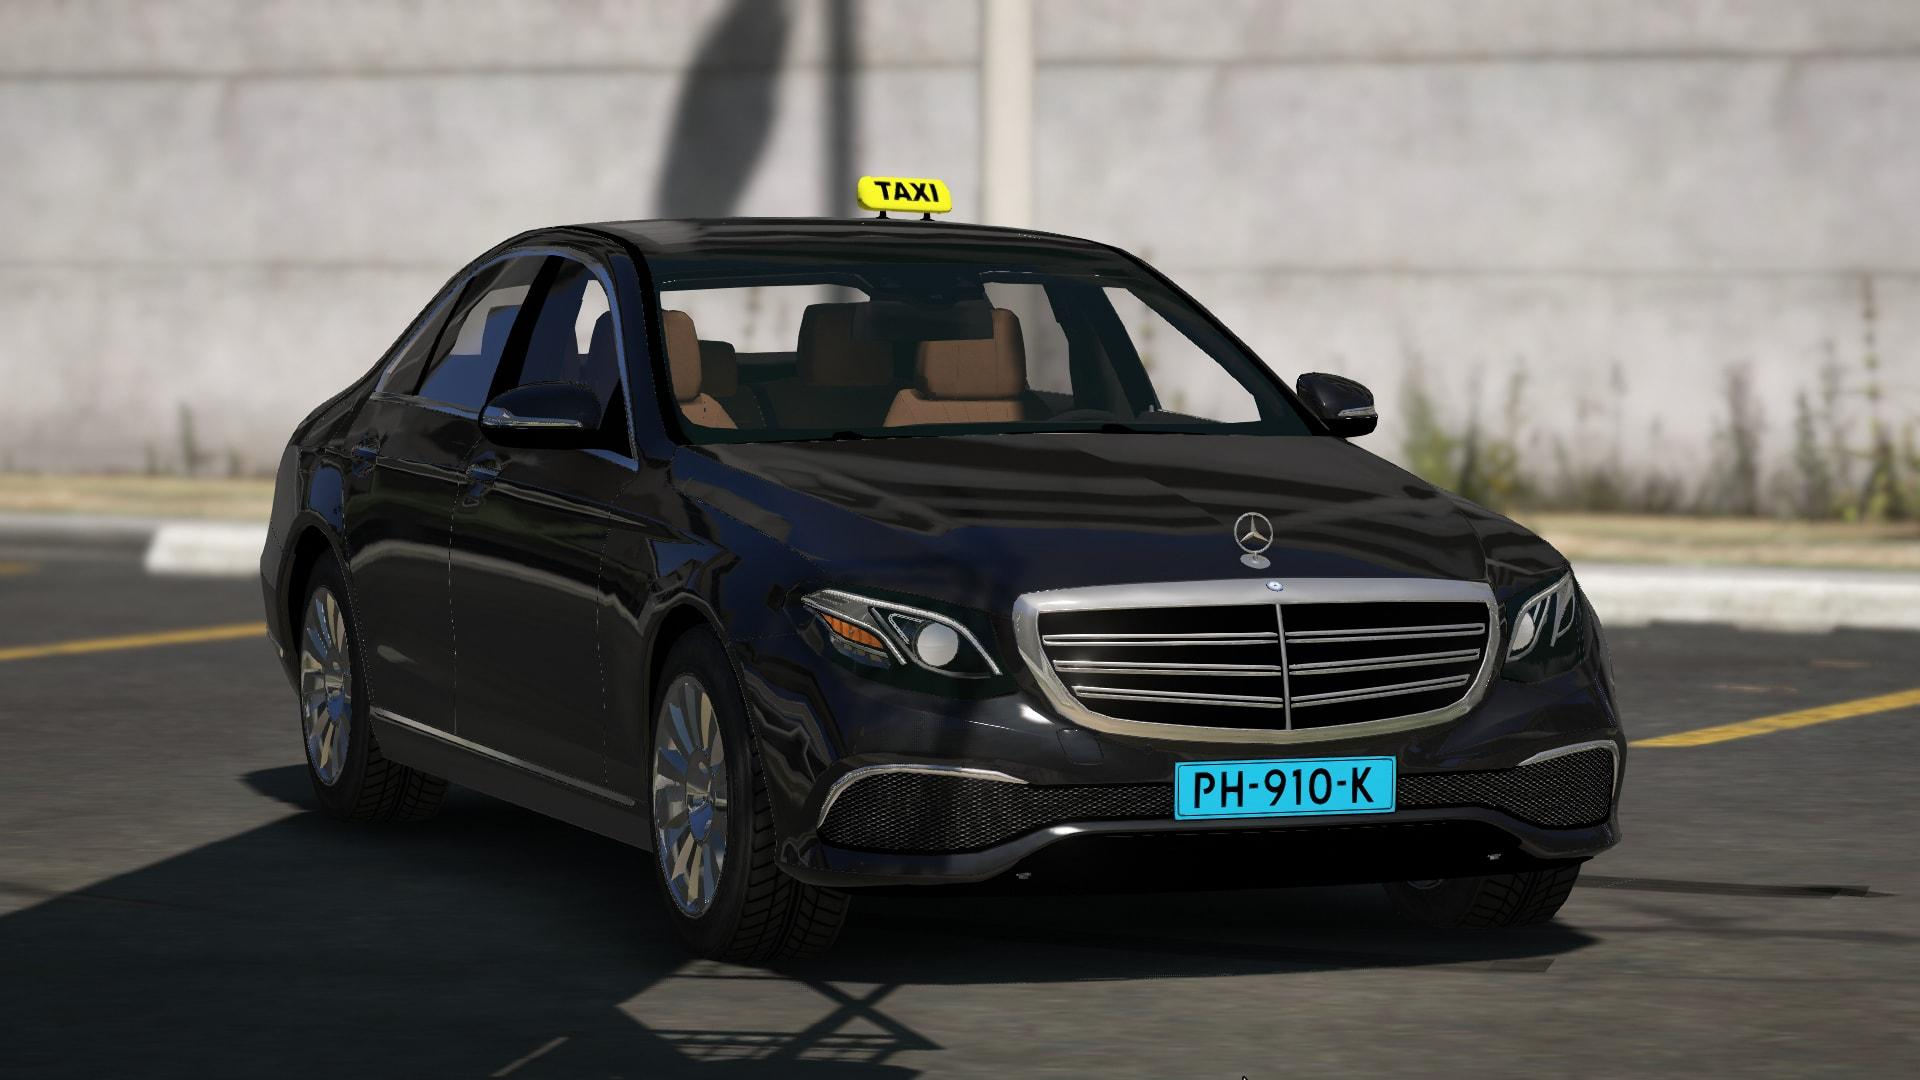 dutch mercedes benz e class 2015 taxi gta5. Black Bedroom Furniture Sets. Home Design Ideas